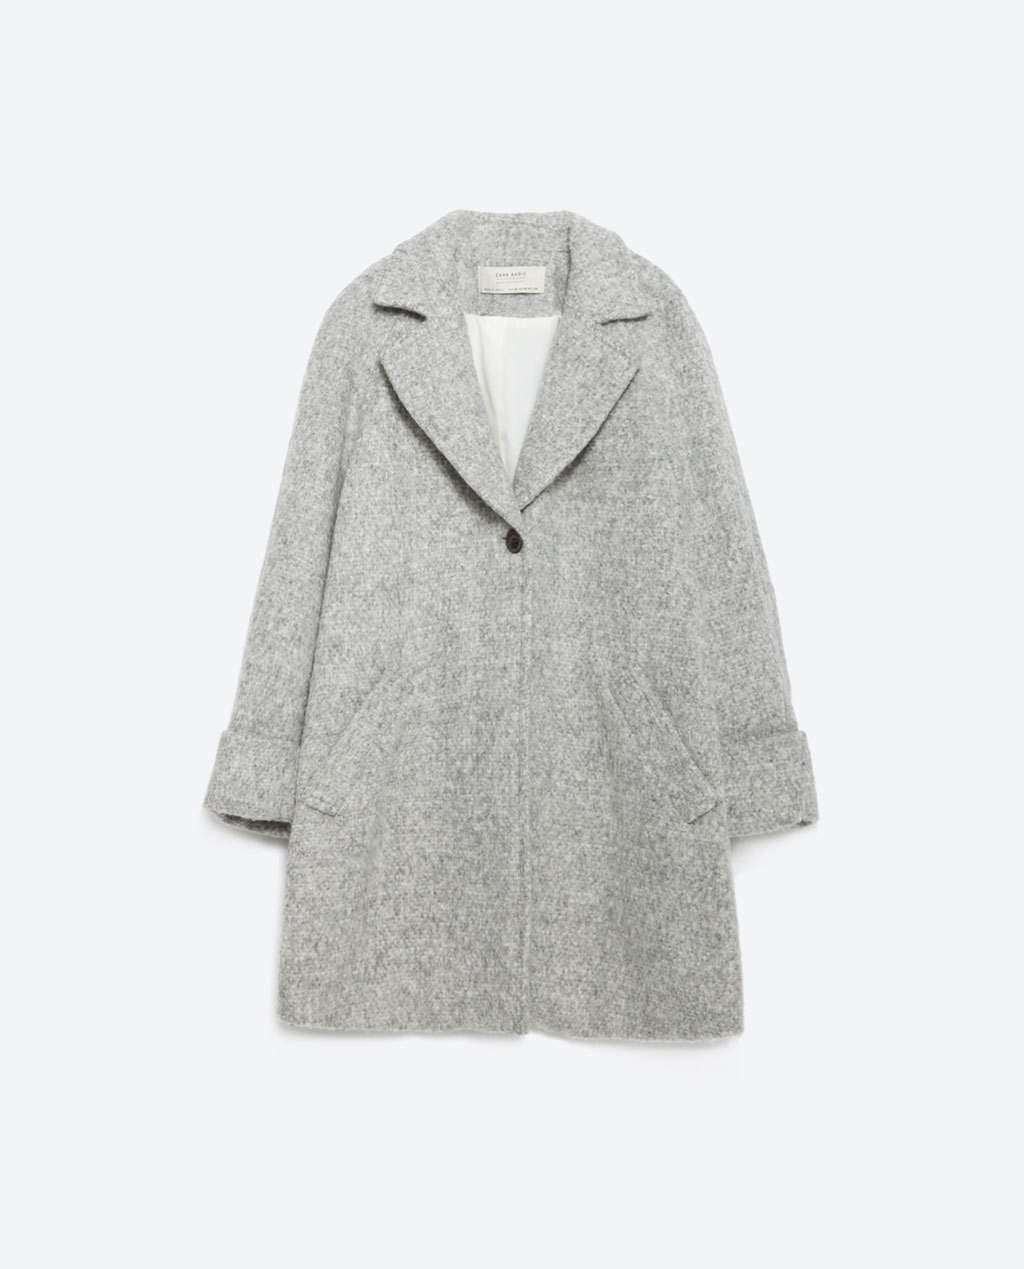 Wool Coat - style: single breasted; collar: standard lapel/rever collar; pattern: herringbone/tweed; length: mid thigh; predominant colour: light grey; occasions: casual, creative work; fit: straight cut (boxy); fibres: wool - 100%; sleeve length: long sleeve; sleeve style: standard; collar break: medium; pattern type: fabric; texture group: woven bulky/heavy; season: a/w 2015; wardrobe: basic